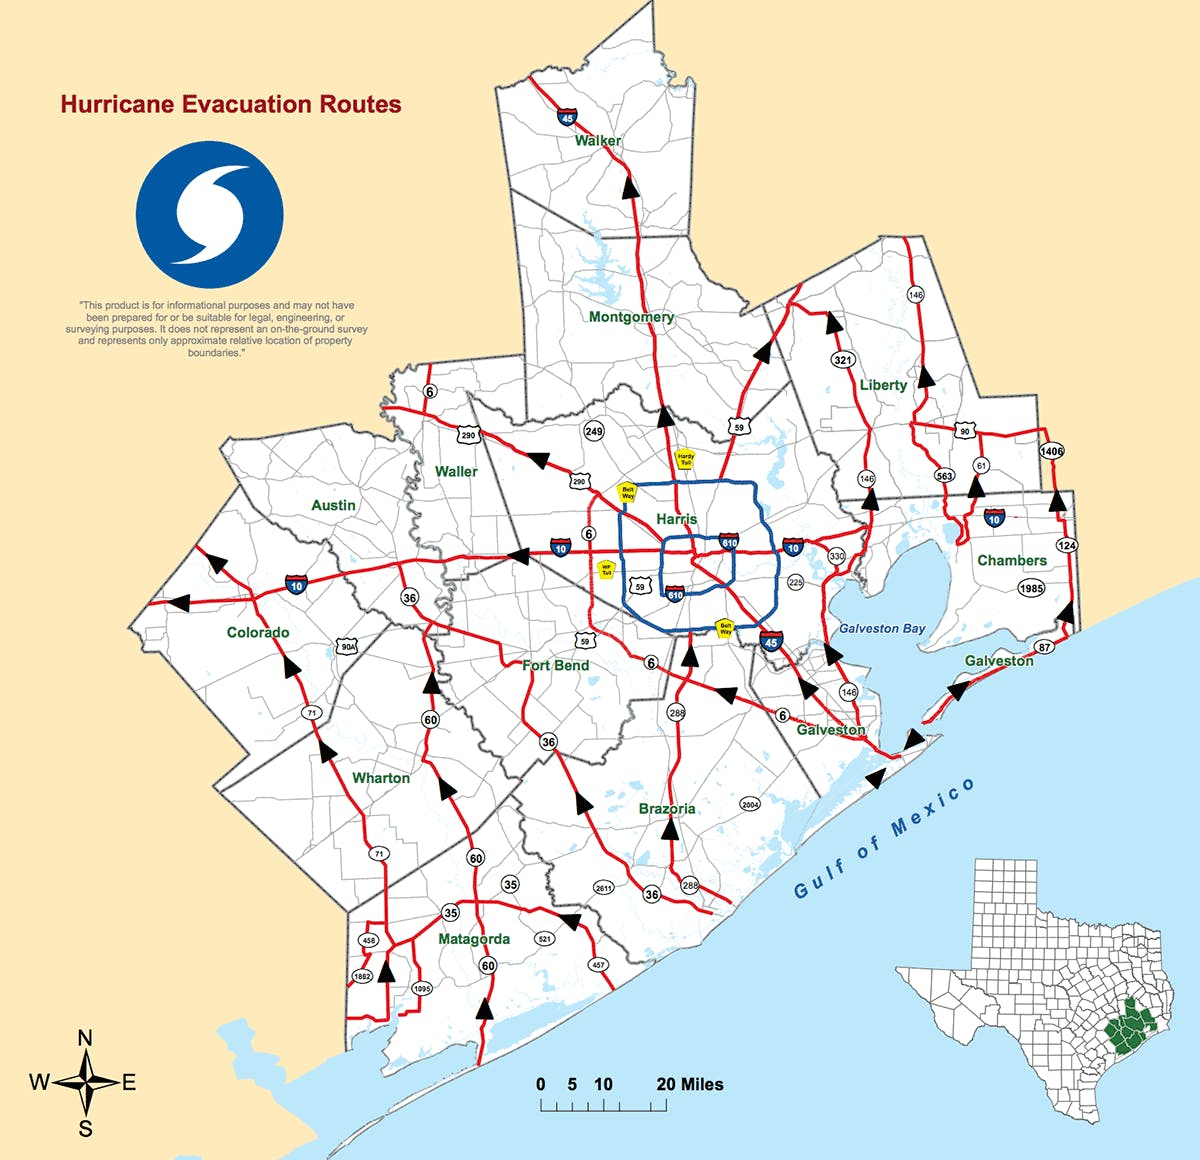 fort-bend-county-emergency-evacuation-routes-map